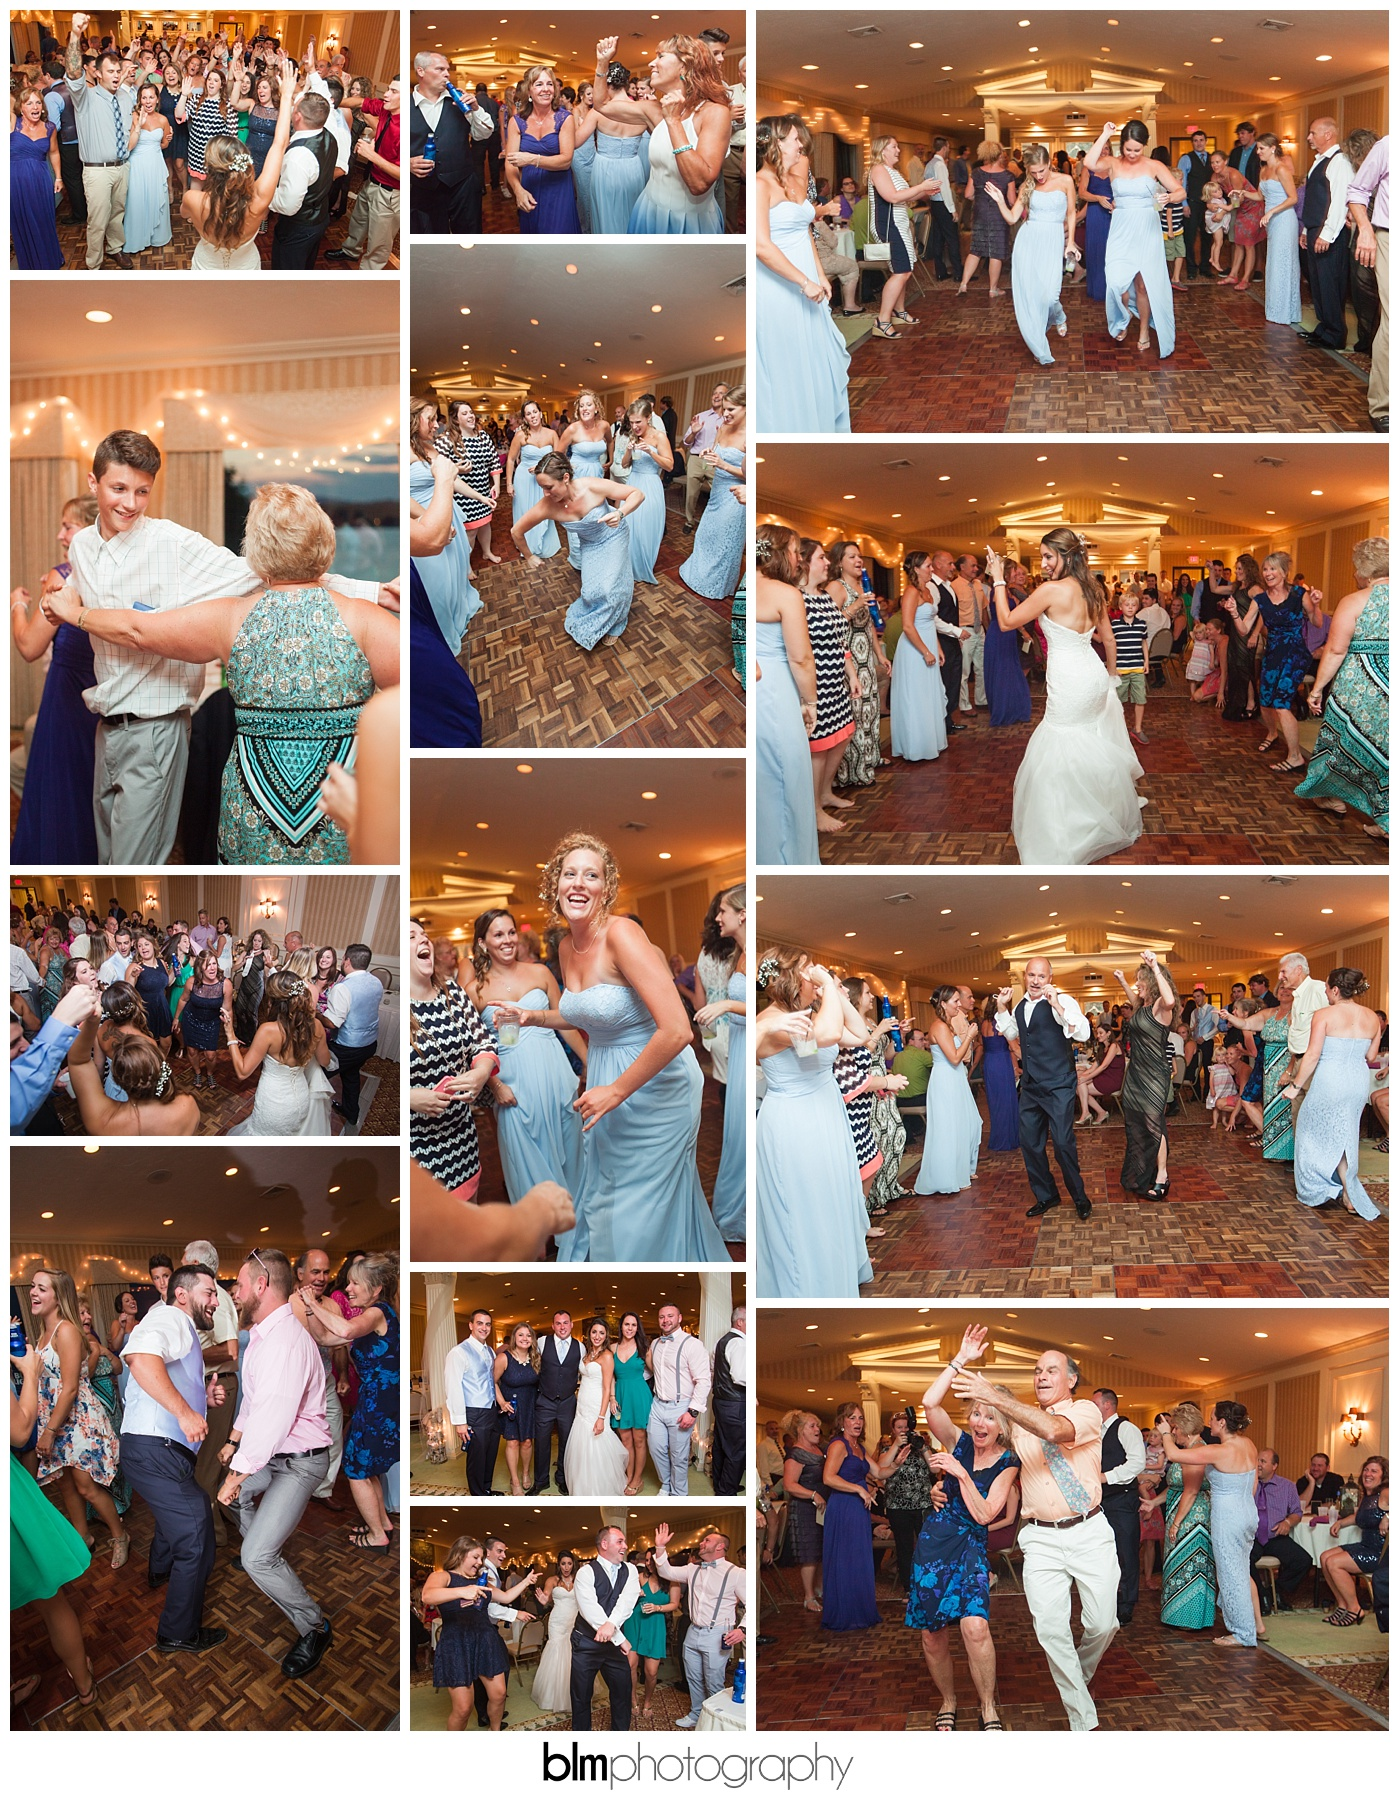 146Anna-Tyler-Married-at-The-Margate_20160812_7403A.jpg